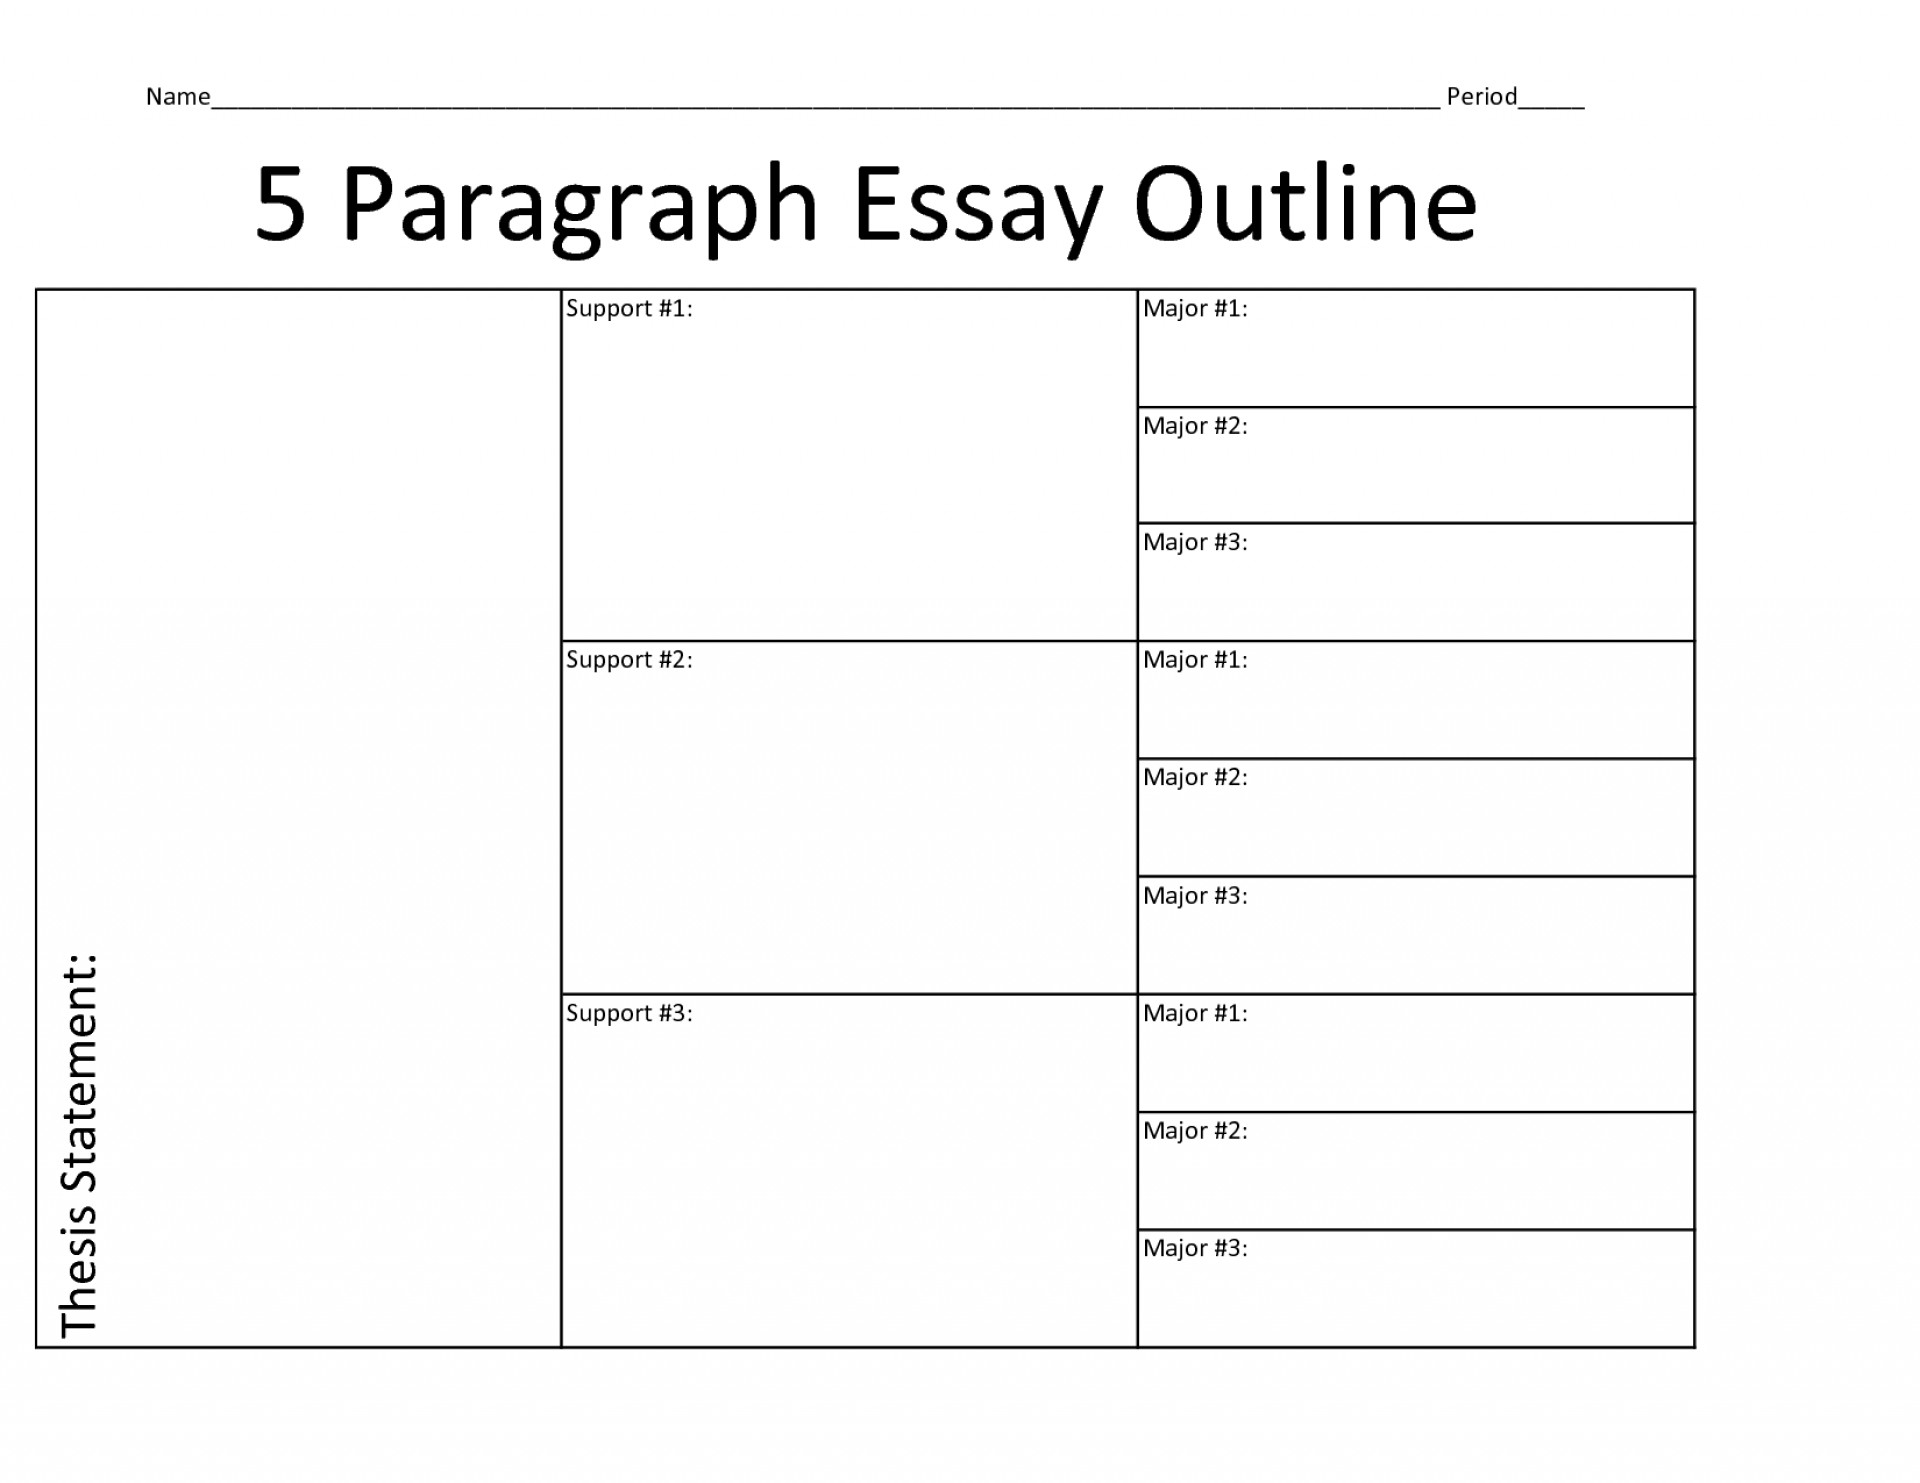 015 Five Paragraph Essay Graphic Organizer Organizers Executive Functioning Mr Brown039s Outline L Wonderful 5 Middle School Doc 1920